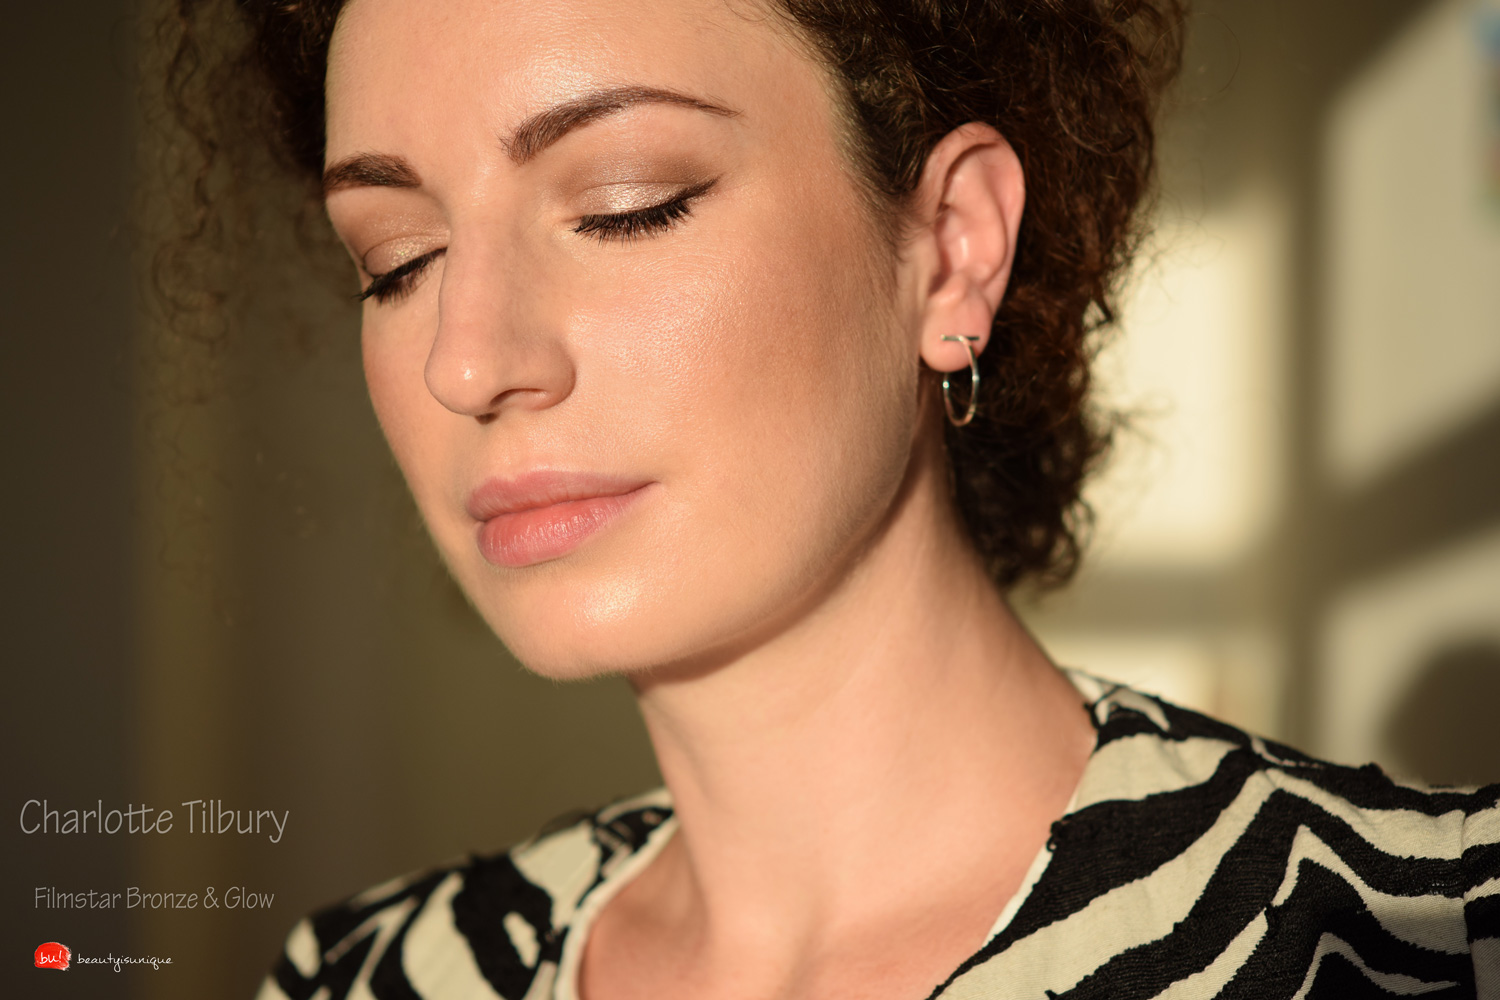 charlotte-tilbury-filmstar-bronze-and-glow